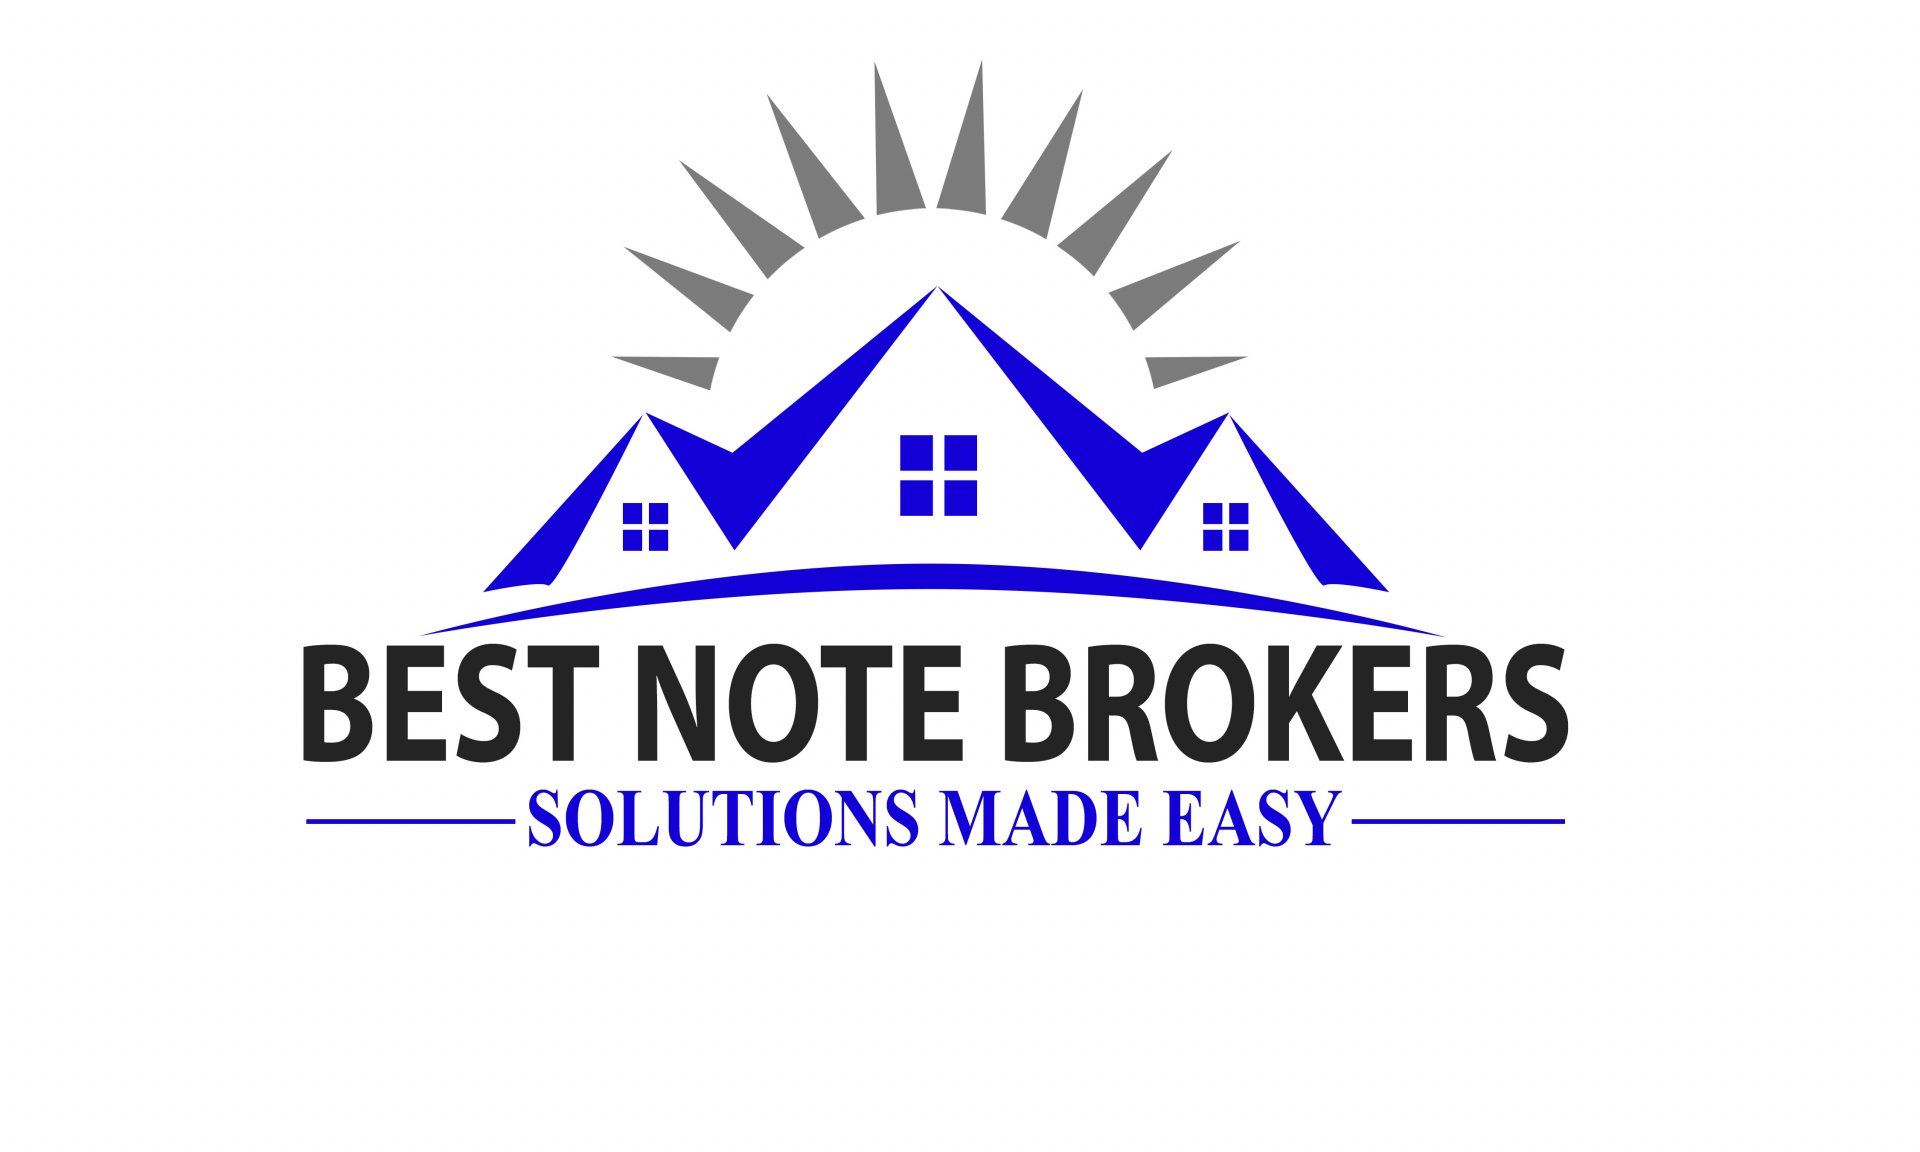 Best Note Brokers logo